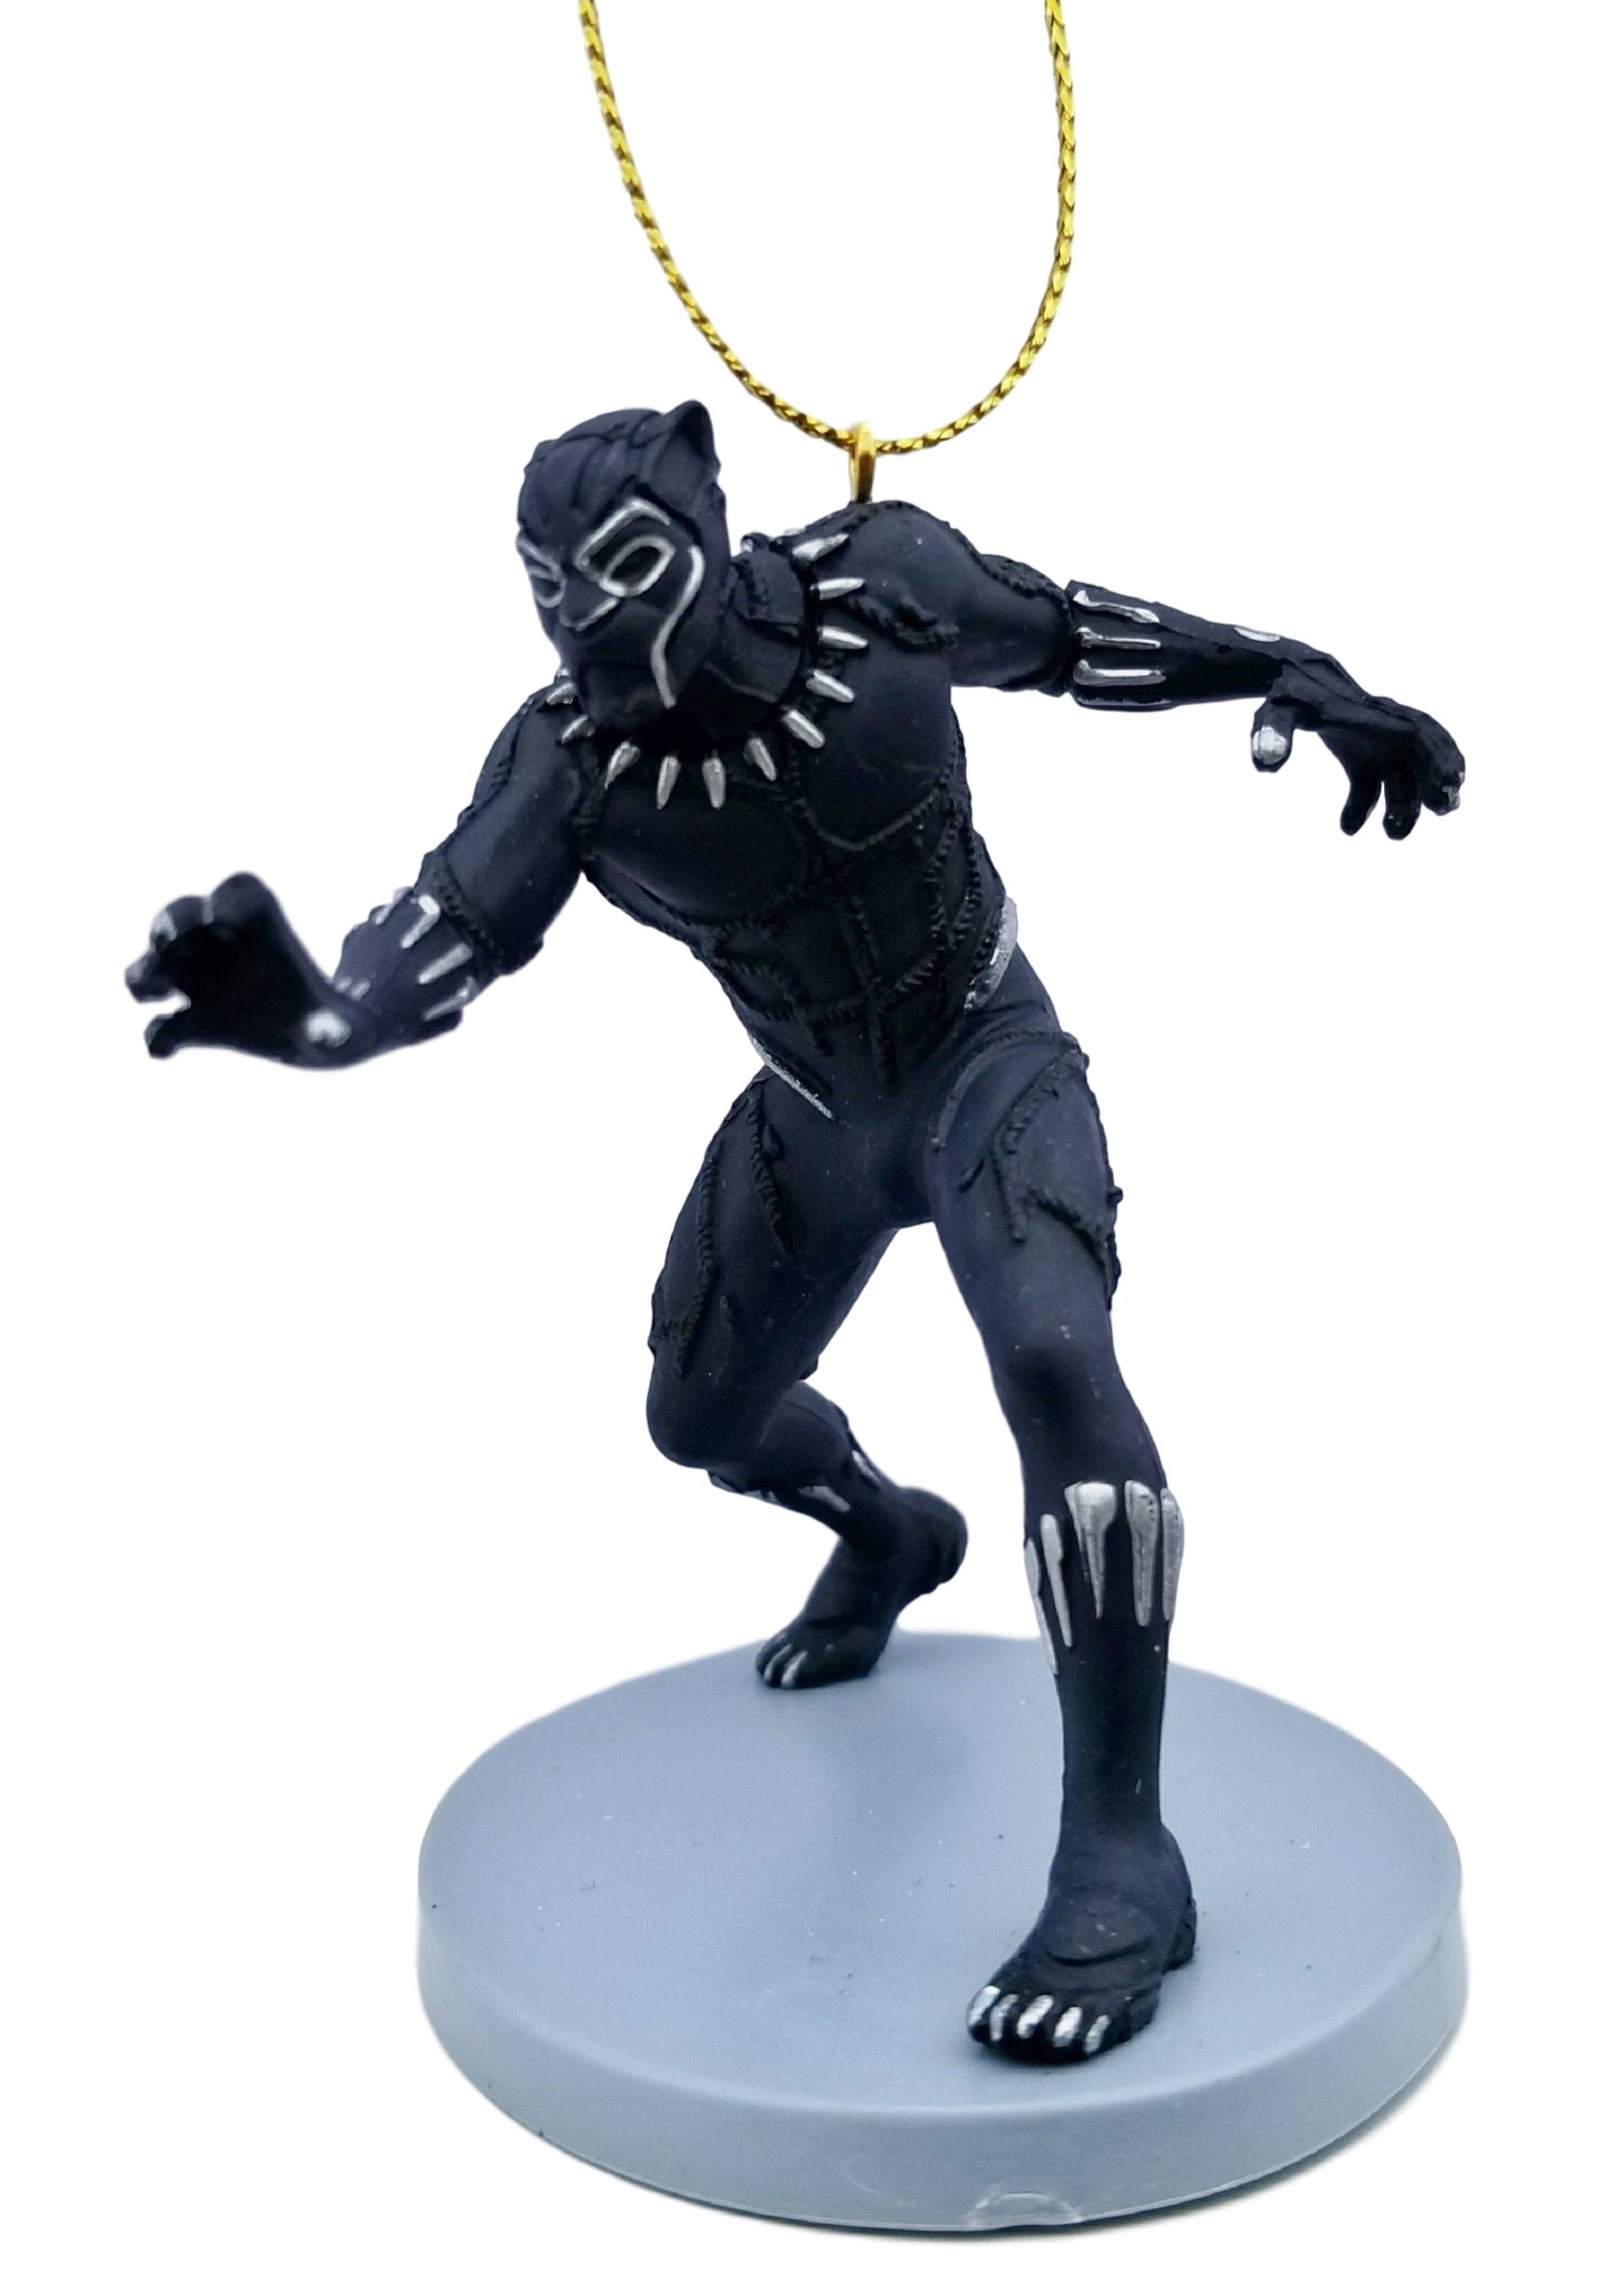 Black Panther (King T'Challa) Figurine Holiday Christmas Tree Ornament - Limited Availability - New for 2018